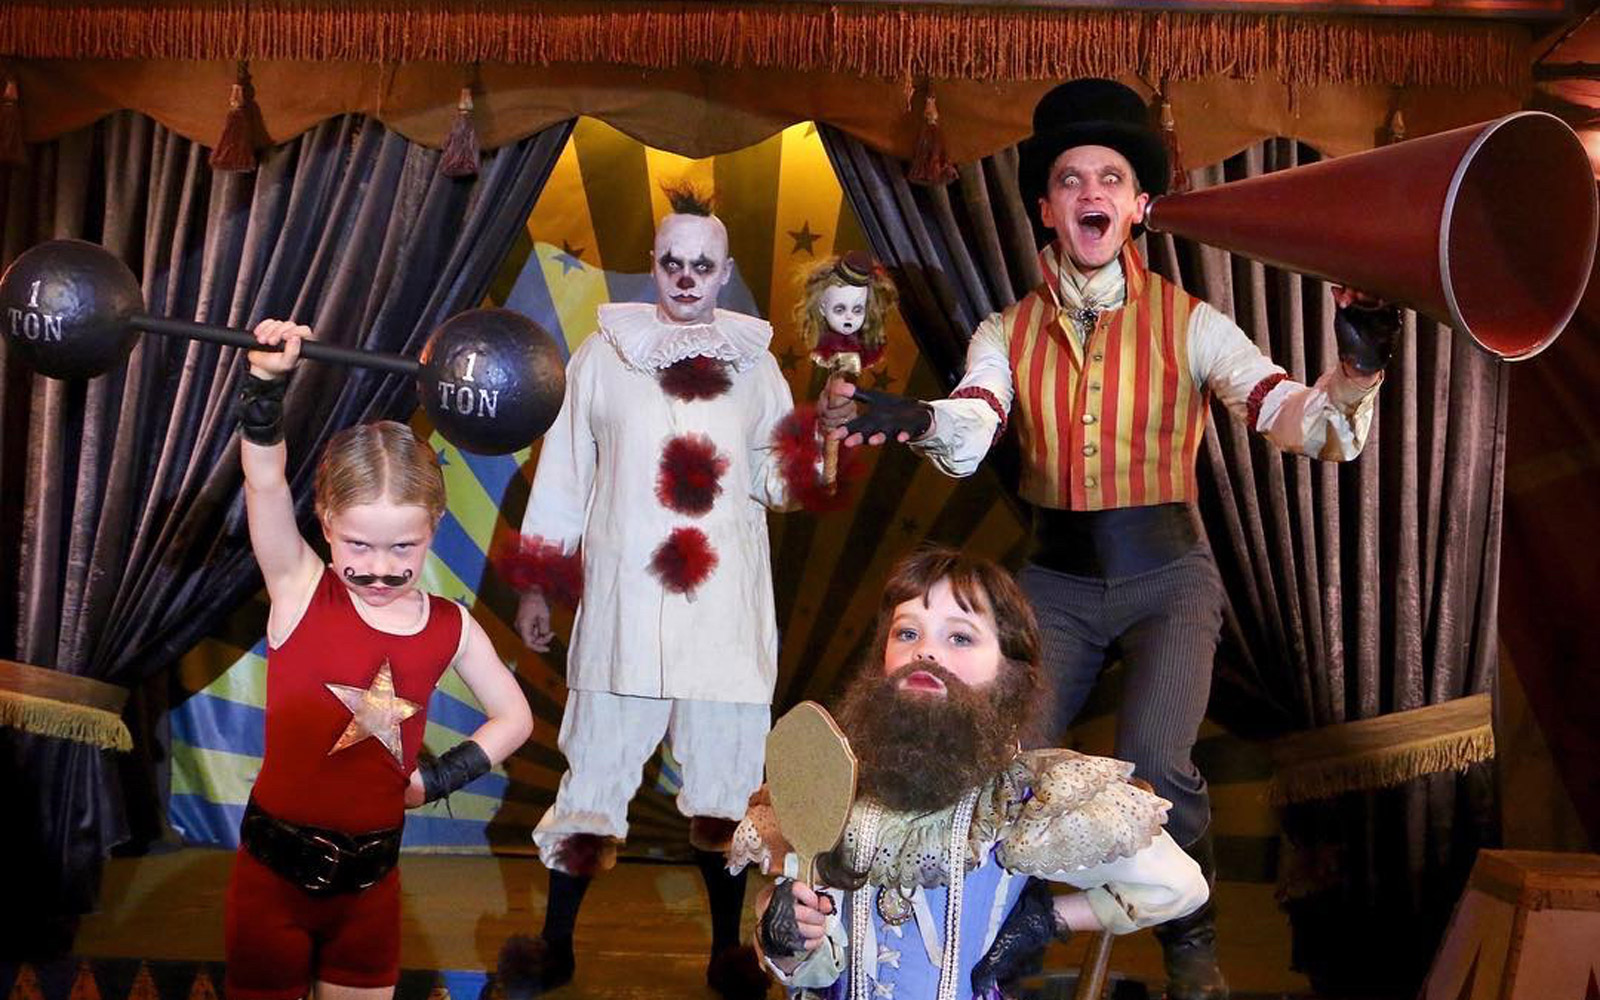 Neil Patrick Harris and Family Took Their Annual Halloween Photo to the Next Level